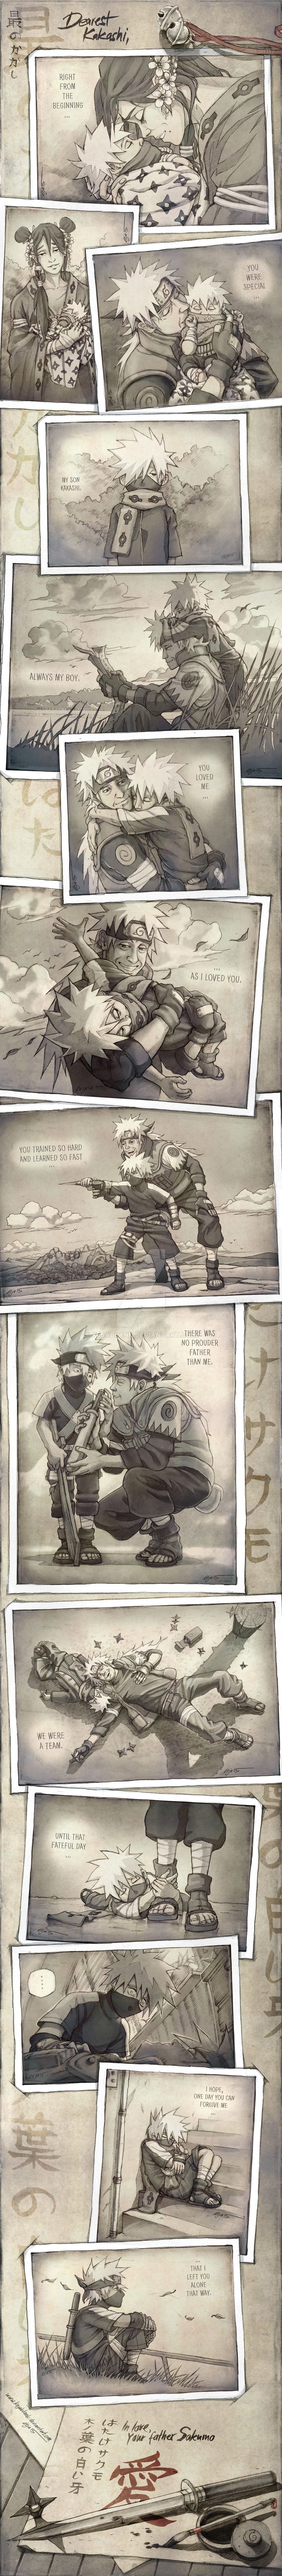 Dearest Kakashi - Letter from Sakumo to his beloved Son Kakashi ...T__T